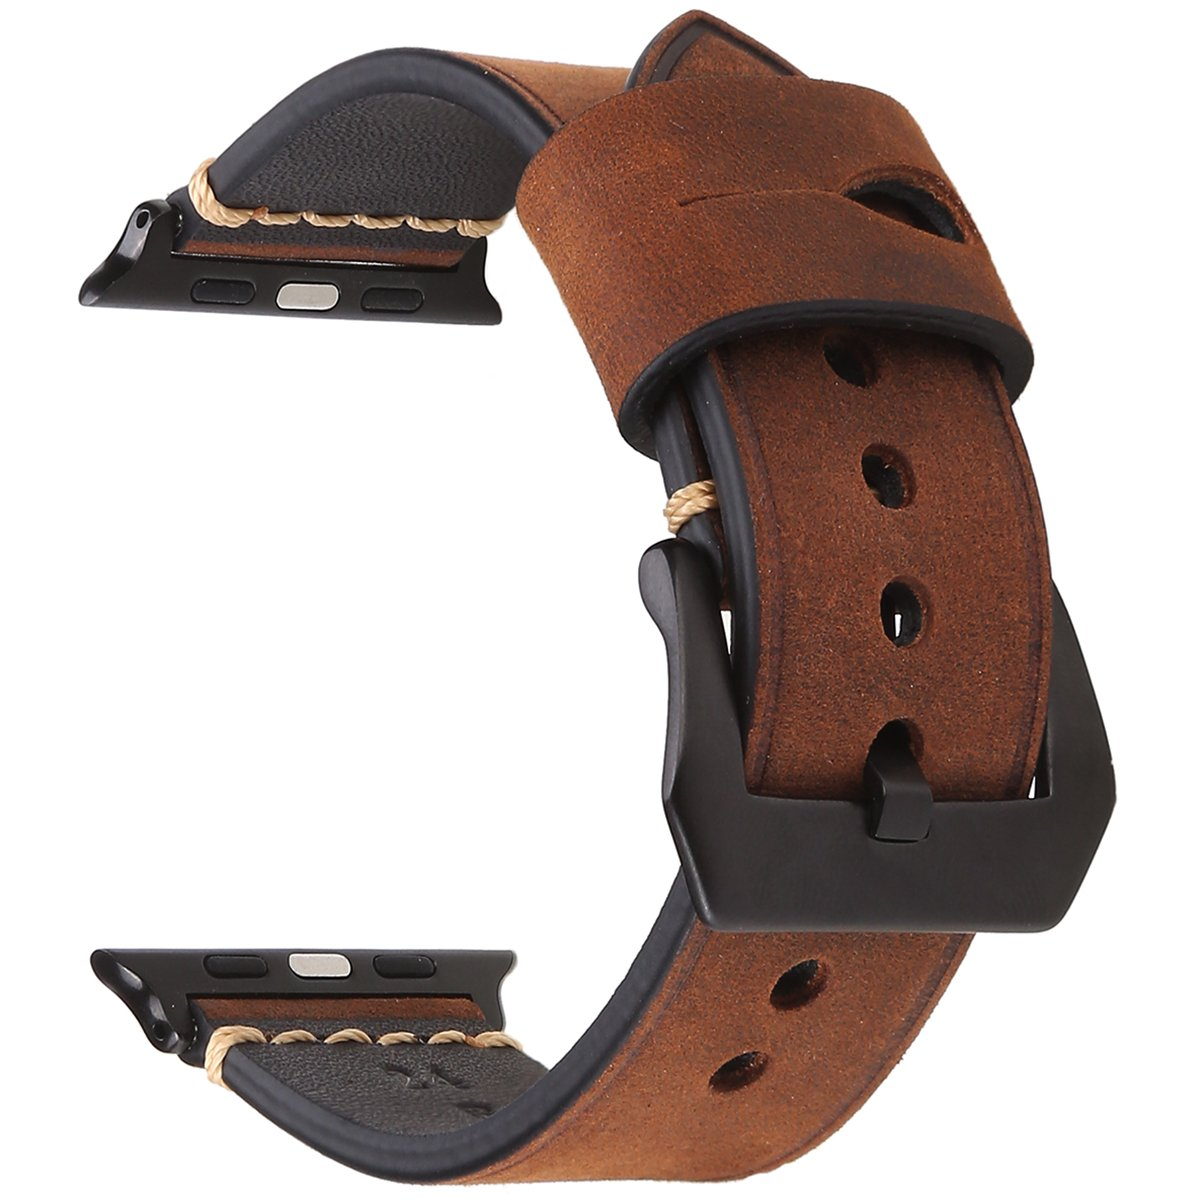 EACHE Genuine leather watch Band 42mm Dark Brown Crazy Horse Calfskin Leather Strap For Iwatch For Apple Watch Series 1,2,3 Black Adapter